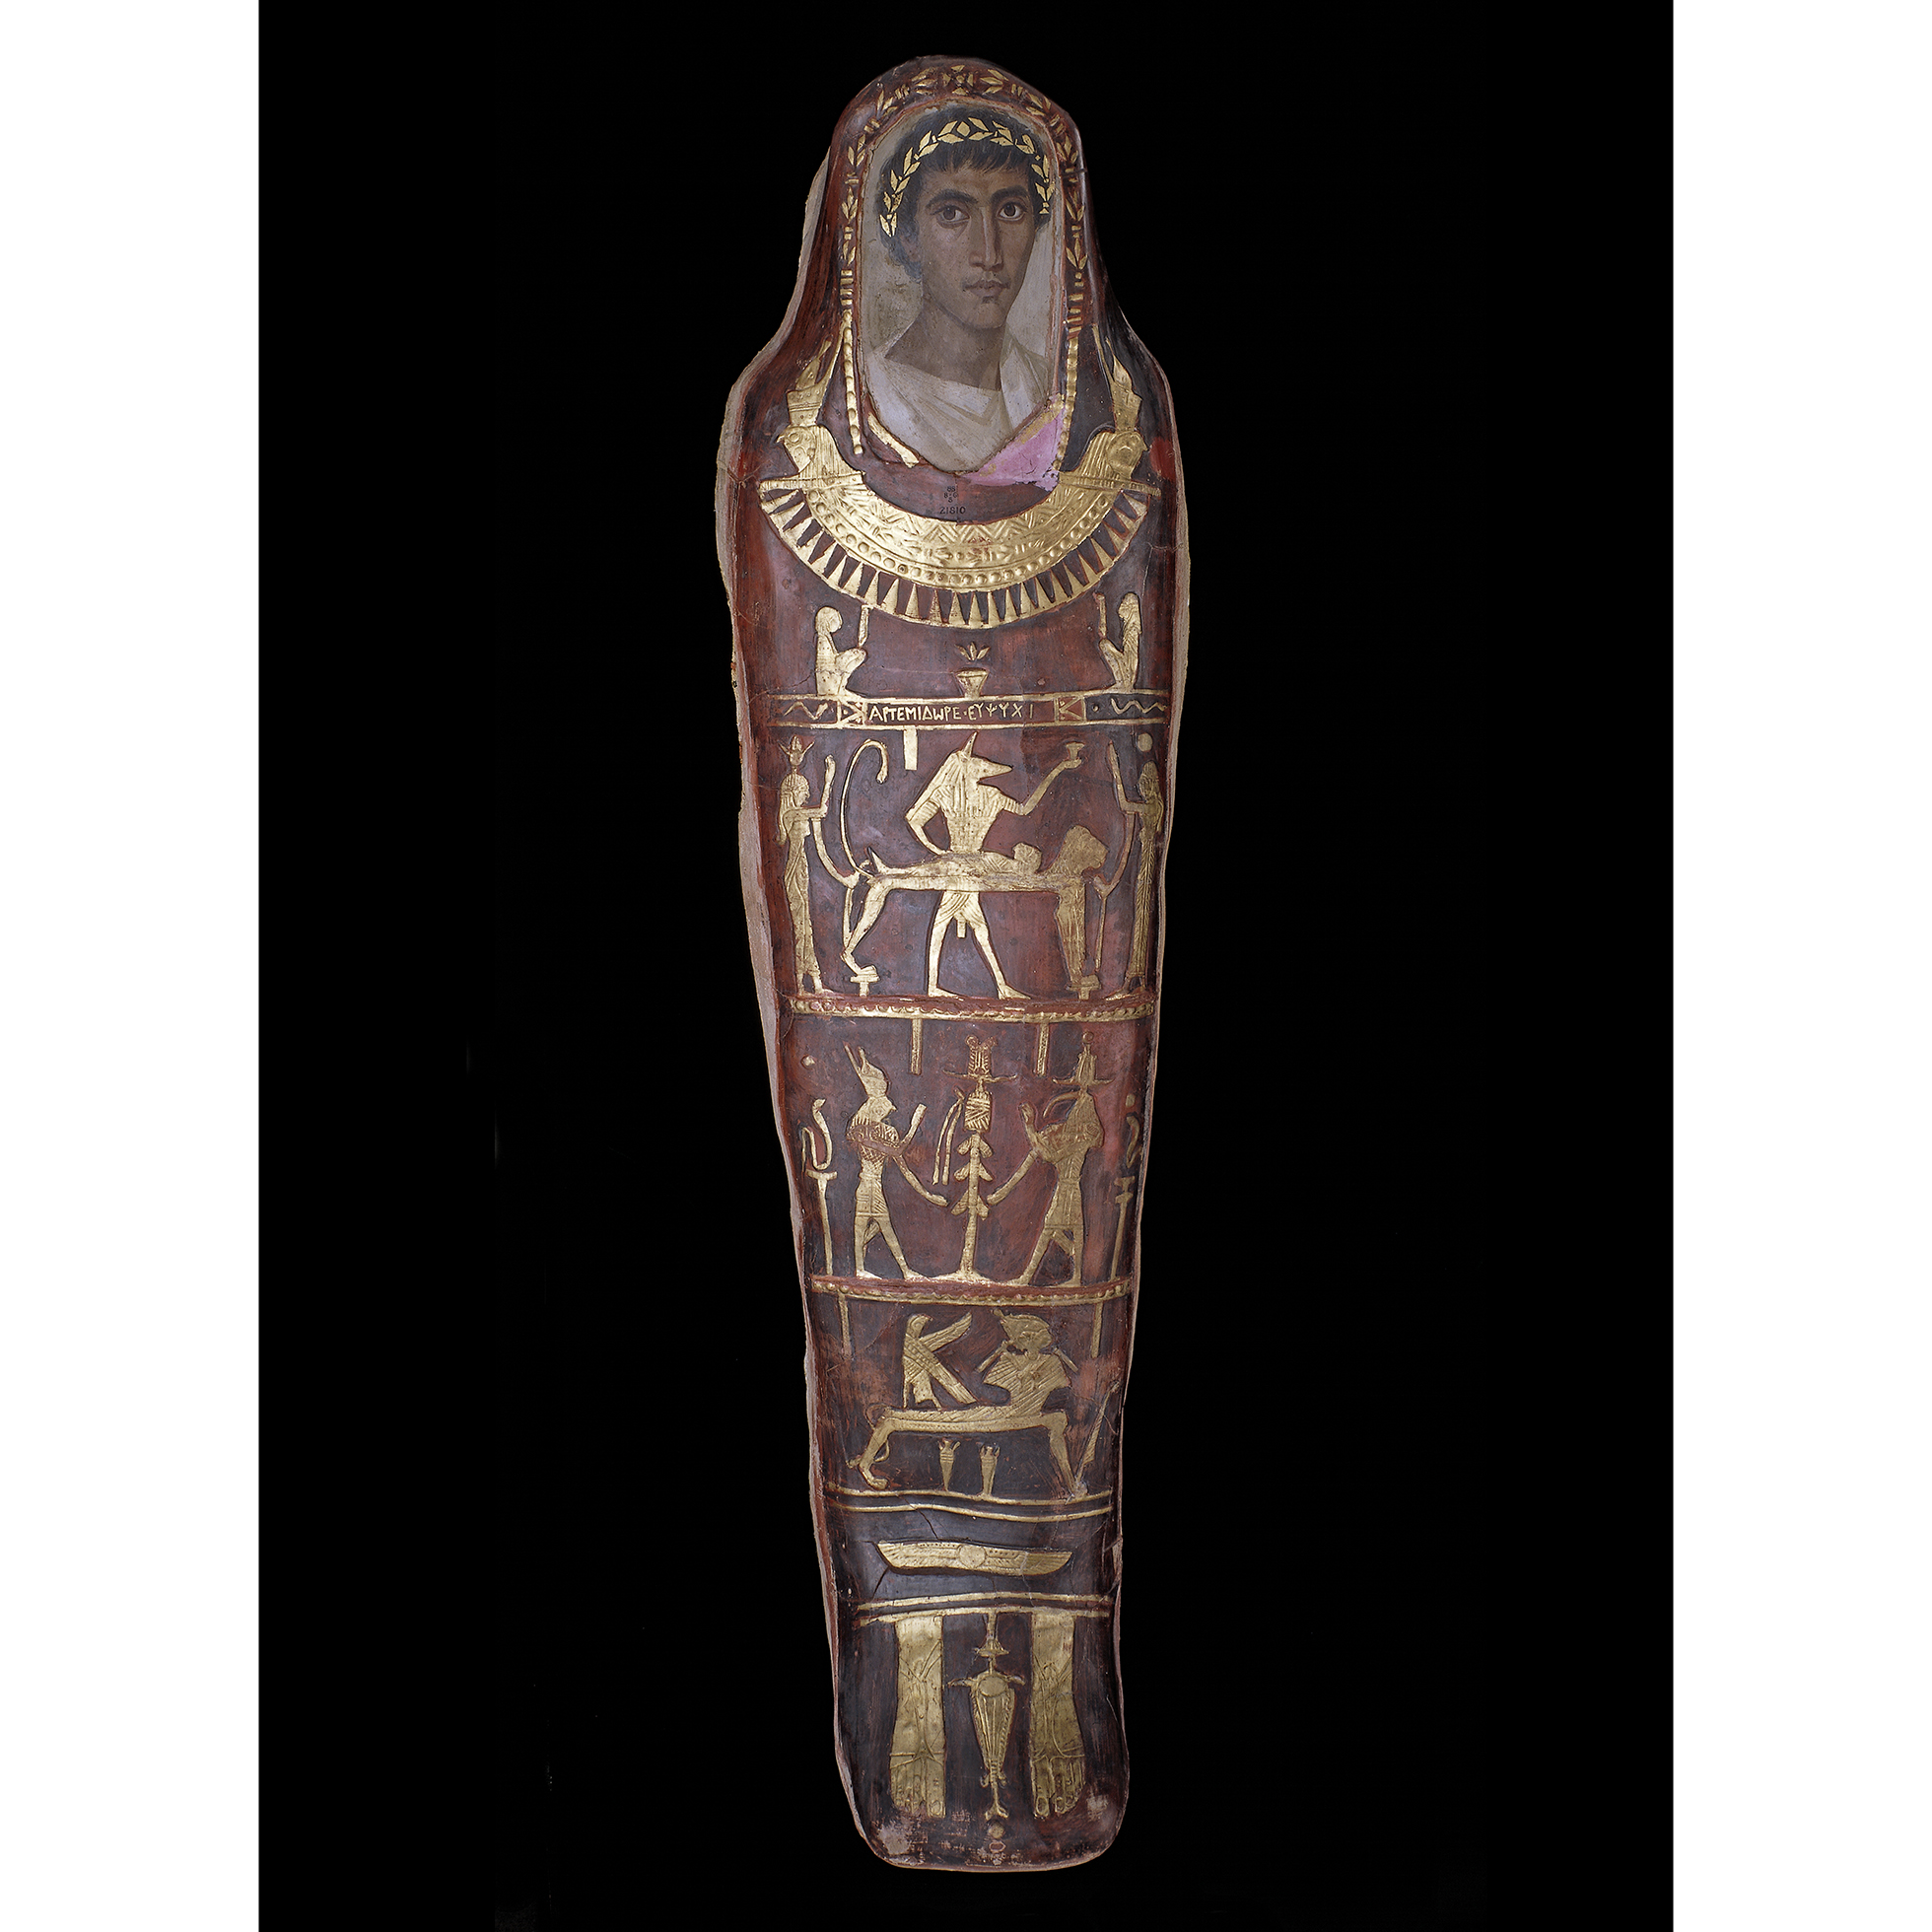 Mummy of a Greek youth, aged 19-21, named Artemidorus in a red body-case with mythological decoration in gold leaf and limewood portrait-panel covering the face.